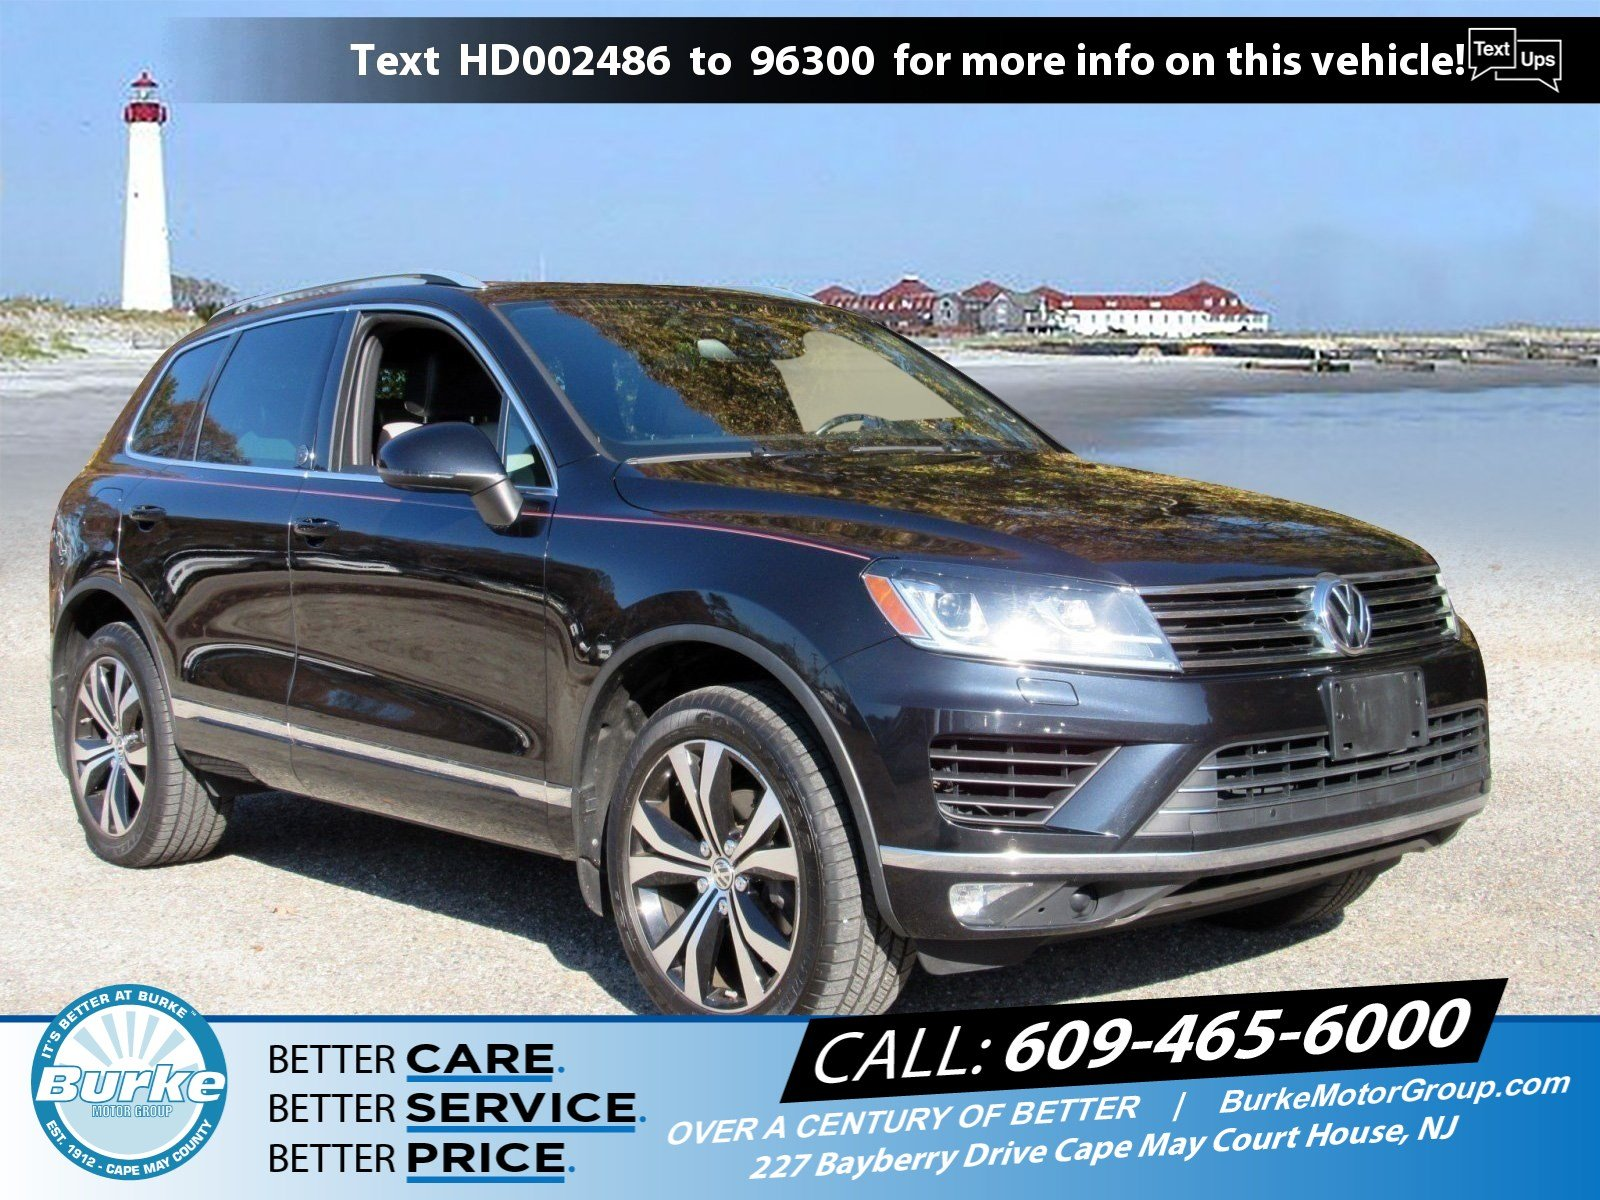 Pre-Owned 2017 Volkswagen Touareg Wolfsburg Edition V6 Wolfsburg Edition for Sale in Cape May Court House